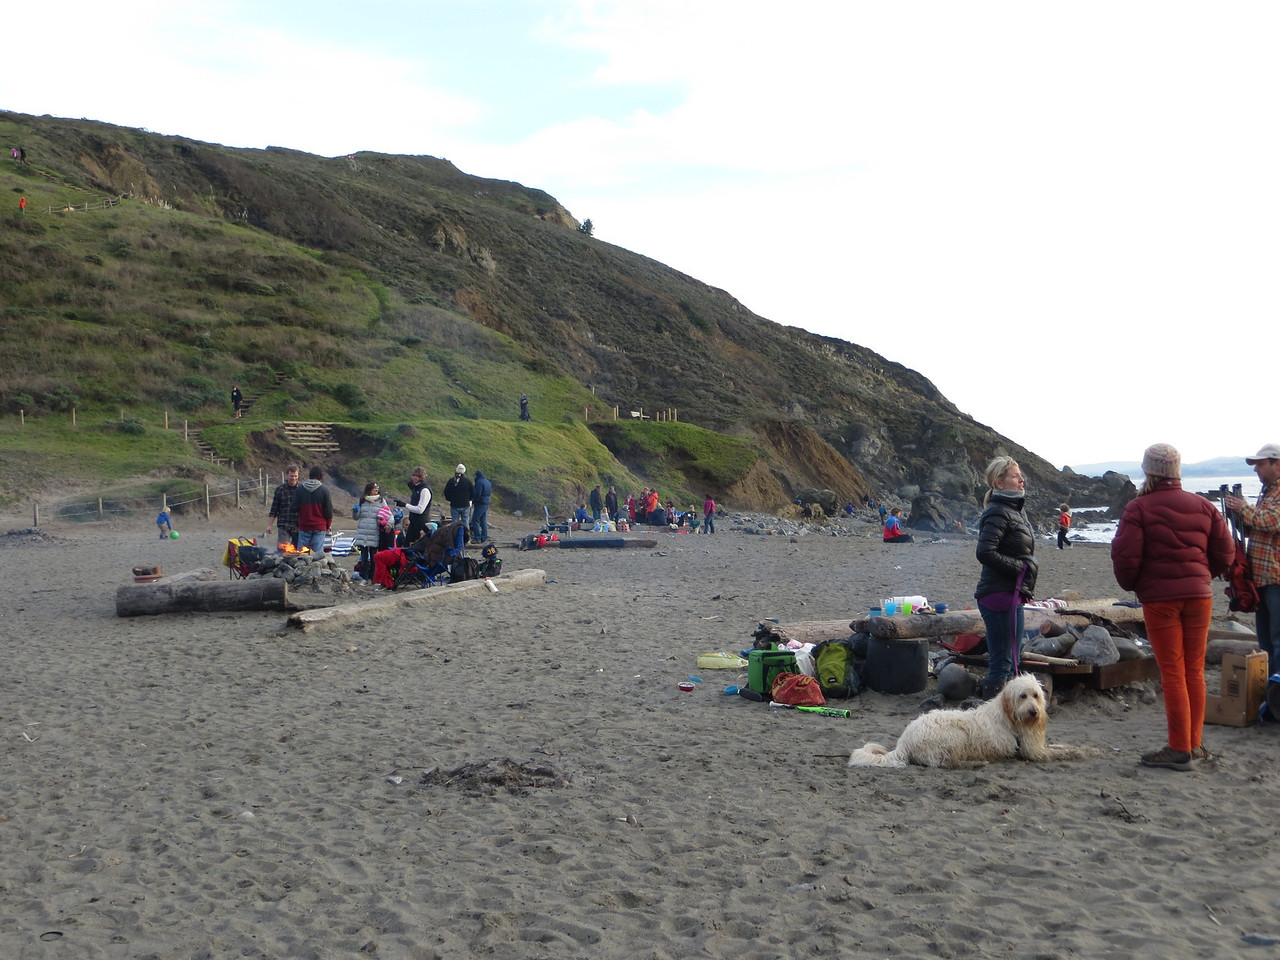 The beach was filled with people, dogs, fires etc.